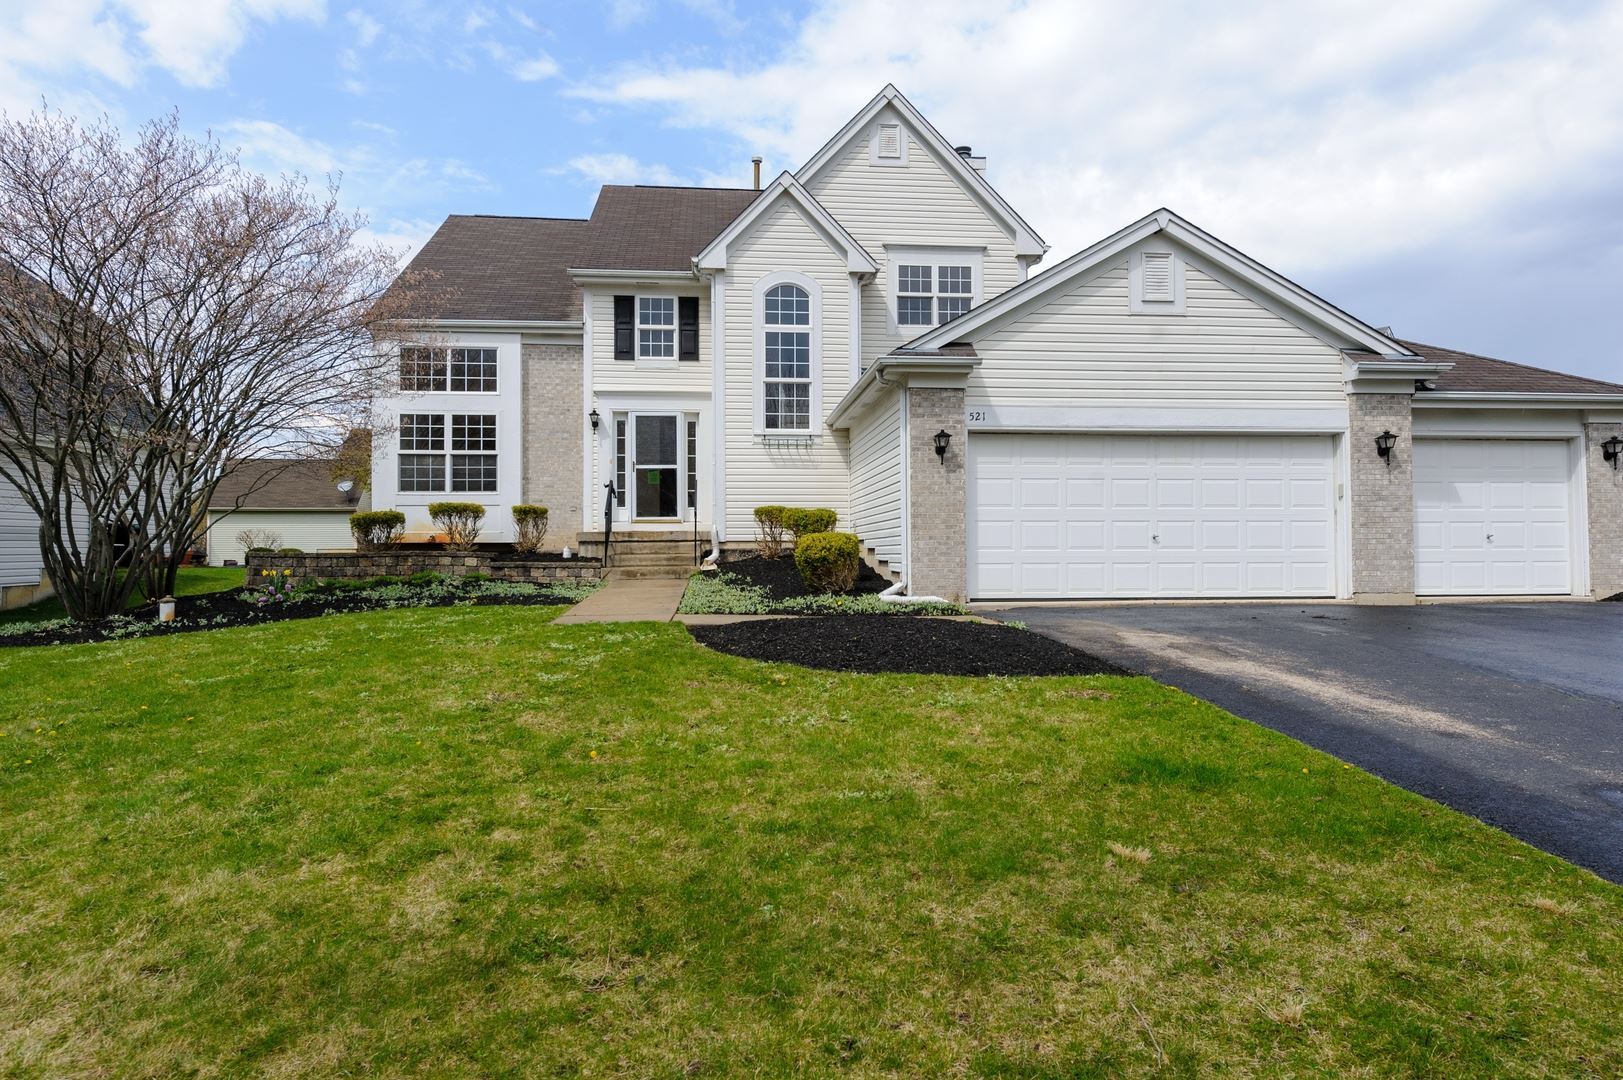 521 Normandy Lane, Port Barrington, IL 60010 - #: 10705976